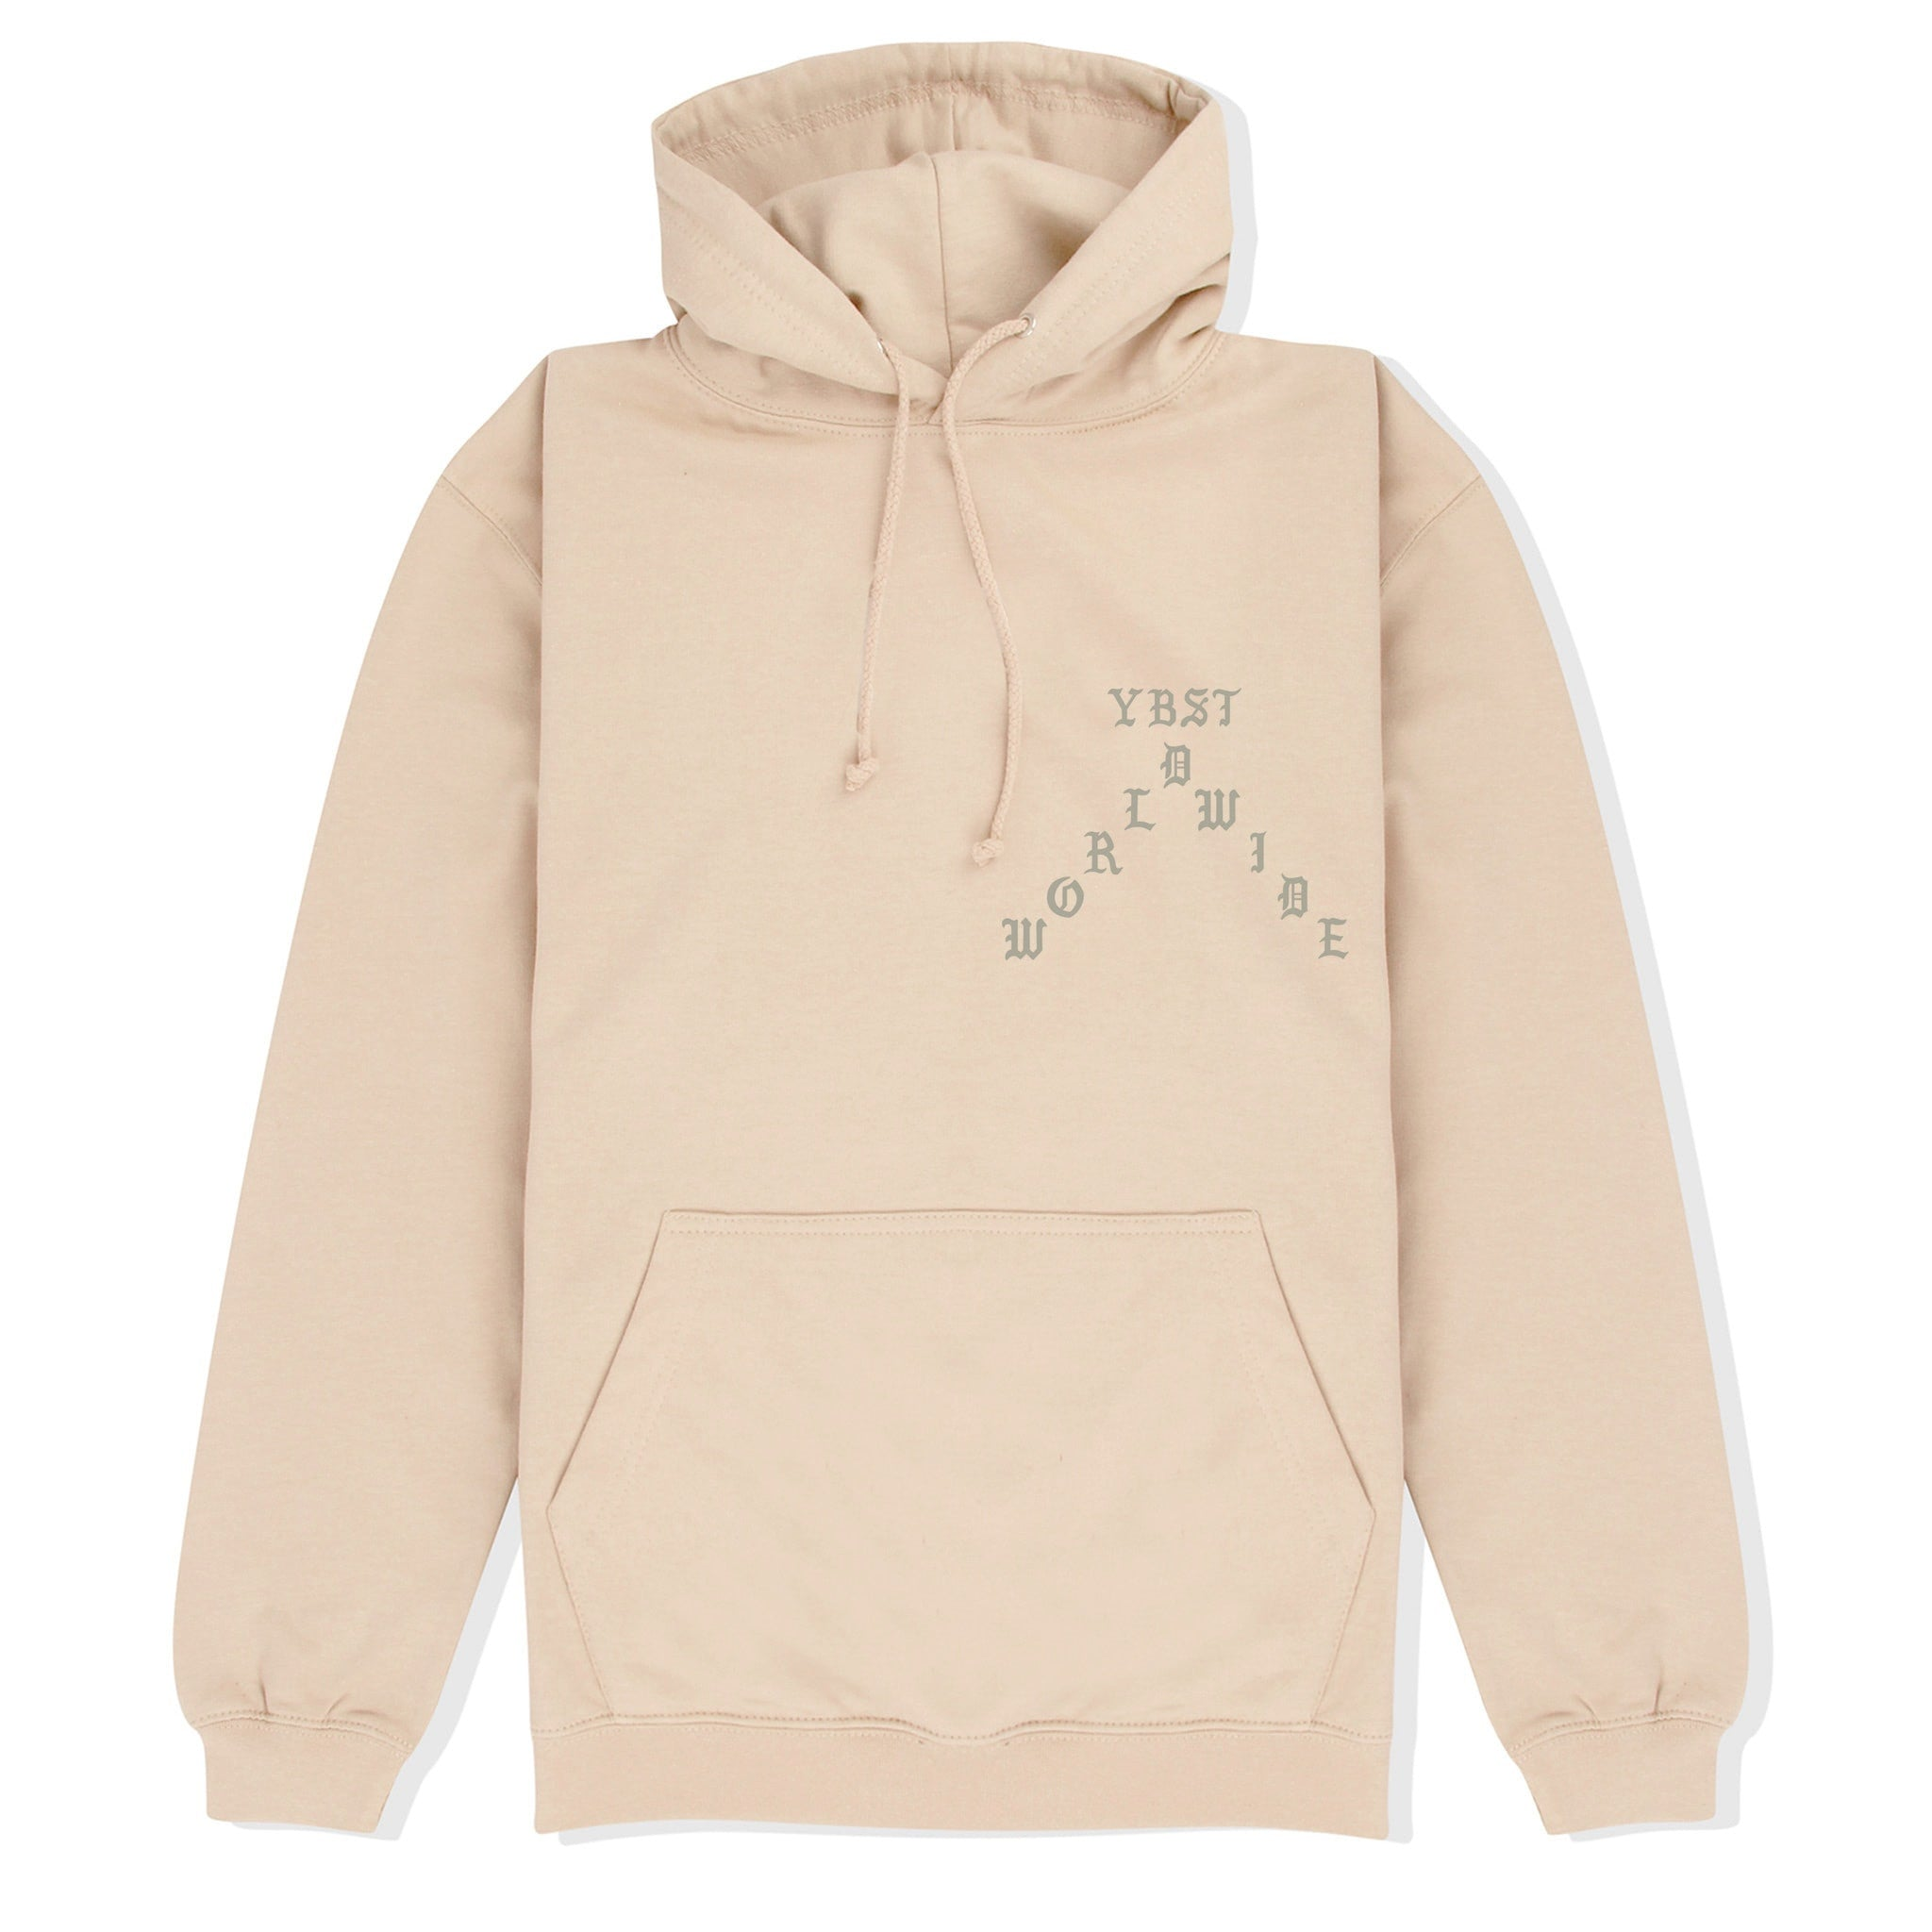 Beige YBST Gothic Hoodie Front